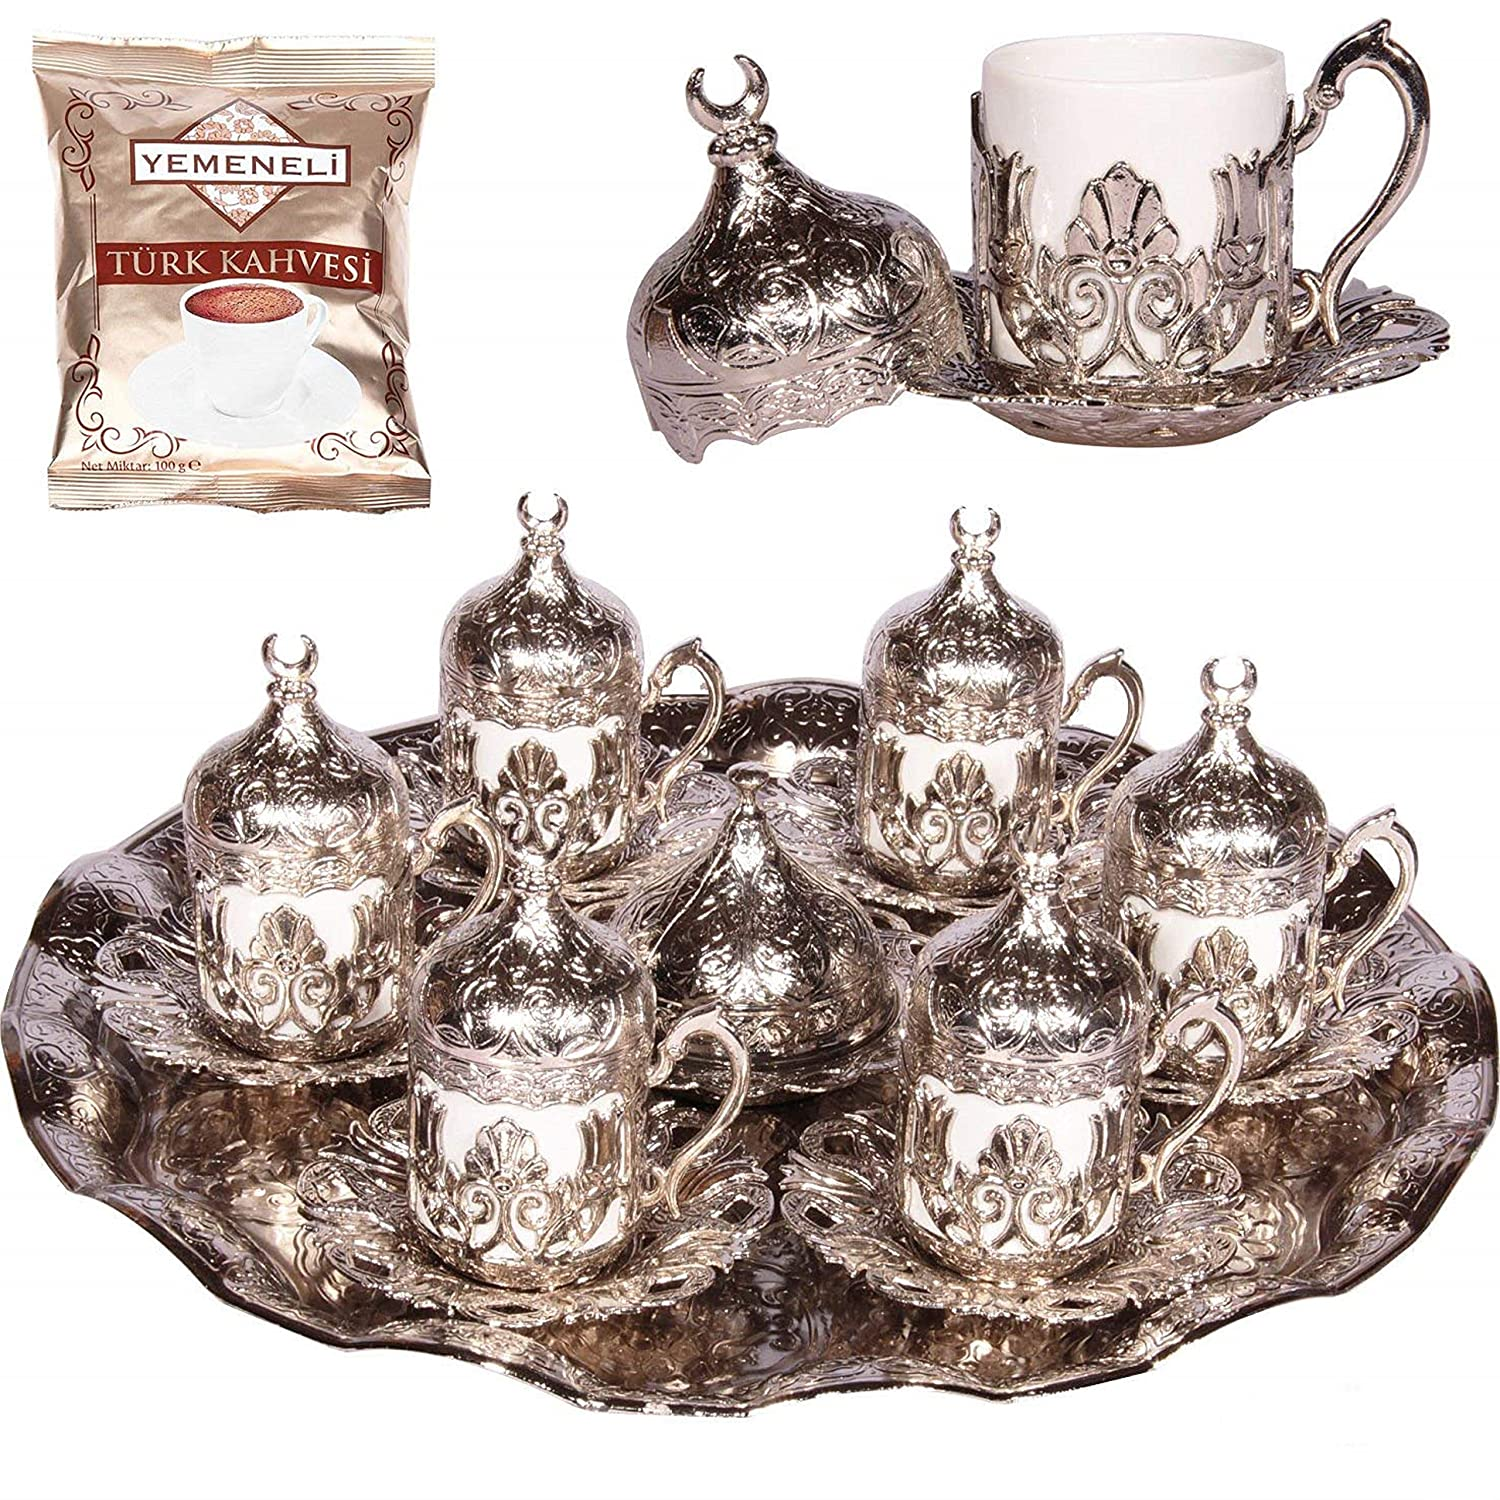 Alisveristime 27 Pc Ottoman Turkish Greek Arabic Coffee Espresso Serving Cup Saucer (Flower) 131977784299